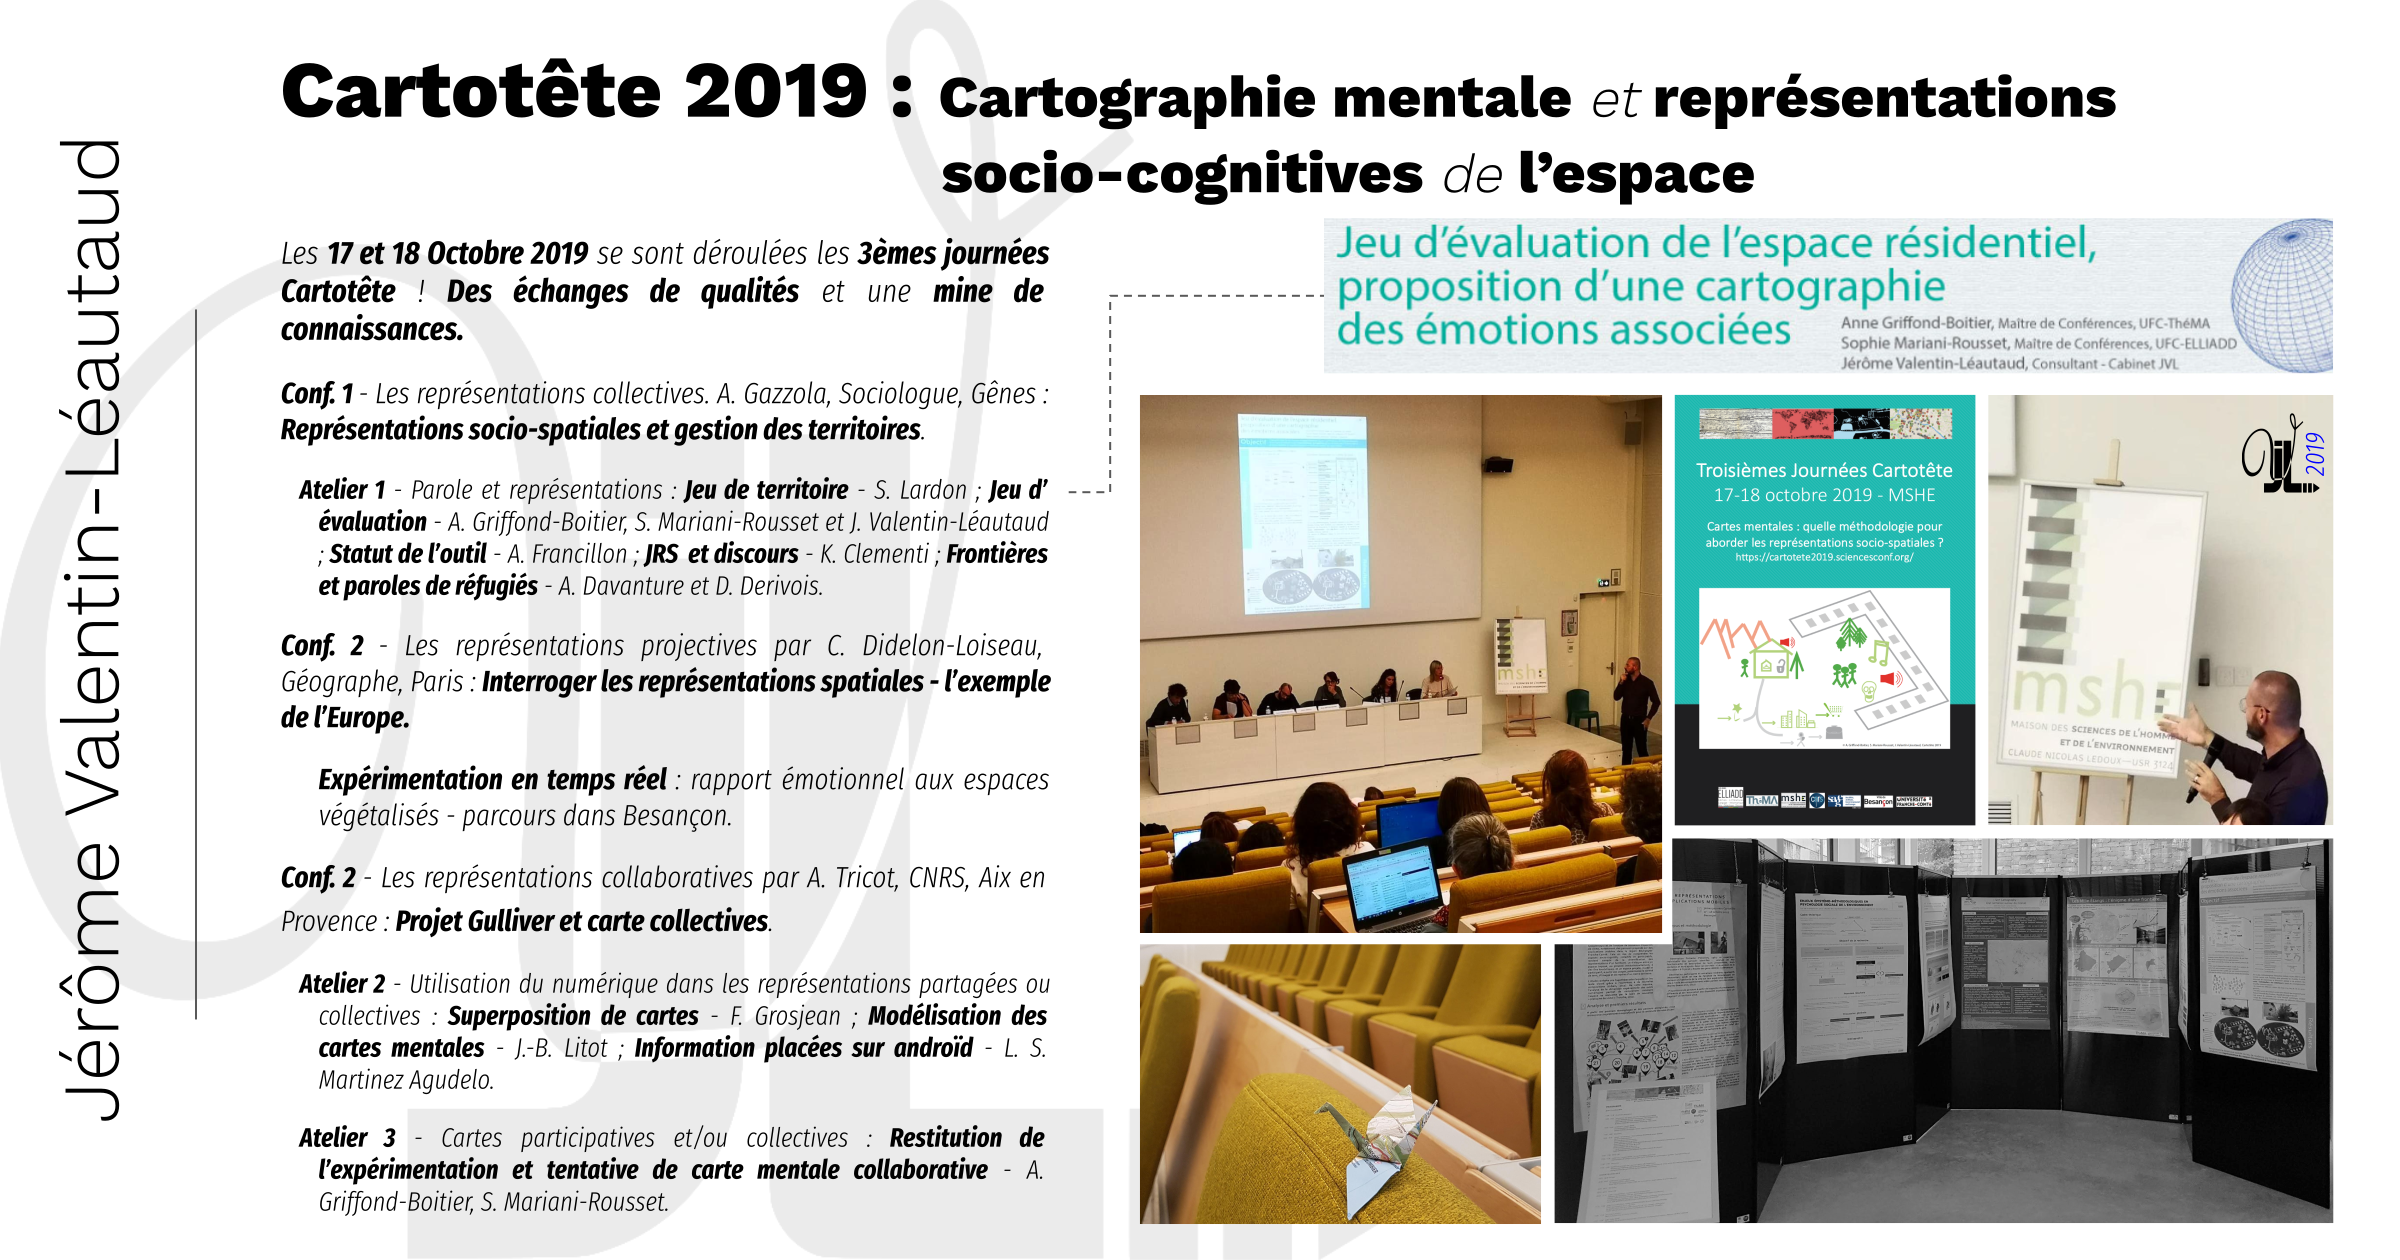 Exemple cartotete 2019